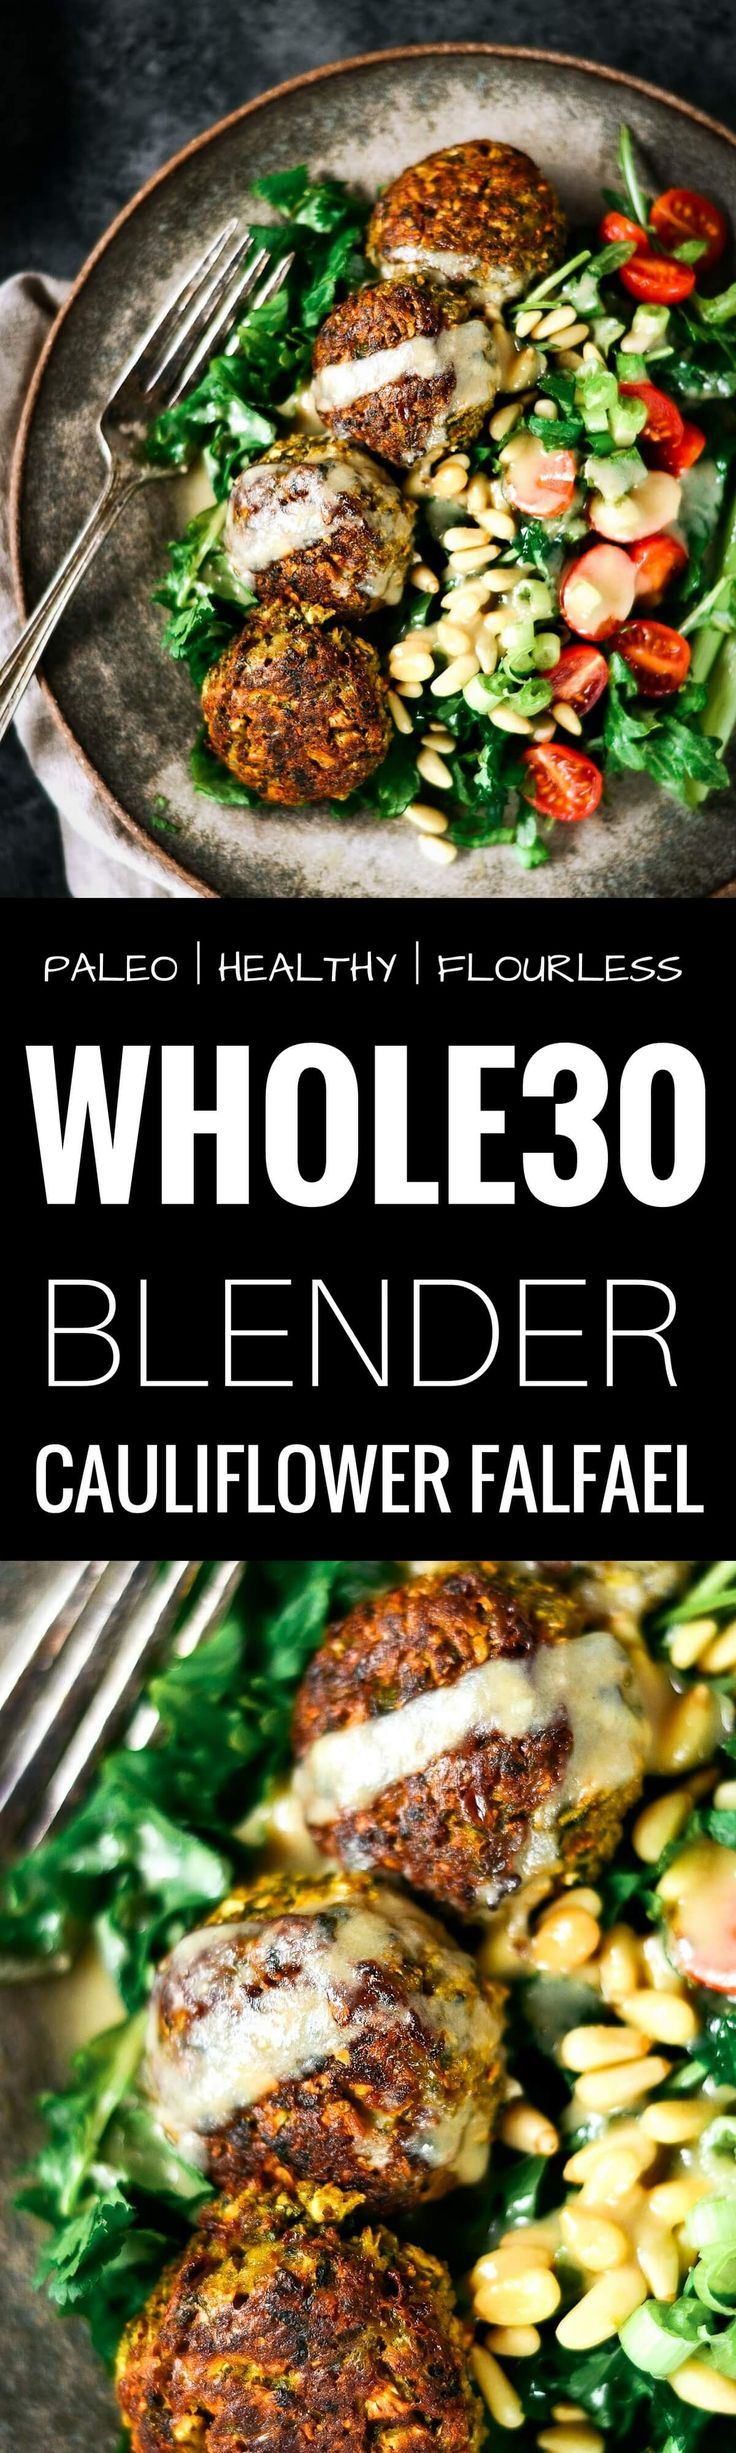 These warm flavorful falafels are better than the real deal! Packed with cauliflower and fresh herbs! A low carb delicious whole30 meal that is easily made in a blender. Easy baked falafel recipe. Best paleo falafel recipes. Falafel sauce. Healthy falafel. Easy whole30 cauliflower falafel. Made in 15 minutes! Paleo, healthy, and easy to make! Easy whole30 dinner recipes. Whole30 recipes. Whole30 lunch. Whole30 recipes just for you. Whole30 meal planning. Whole30 meal prep. Healthy...